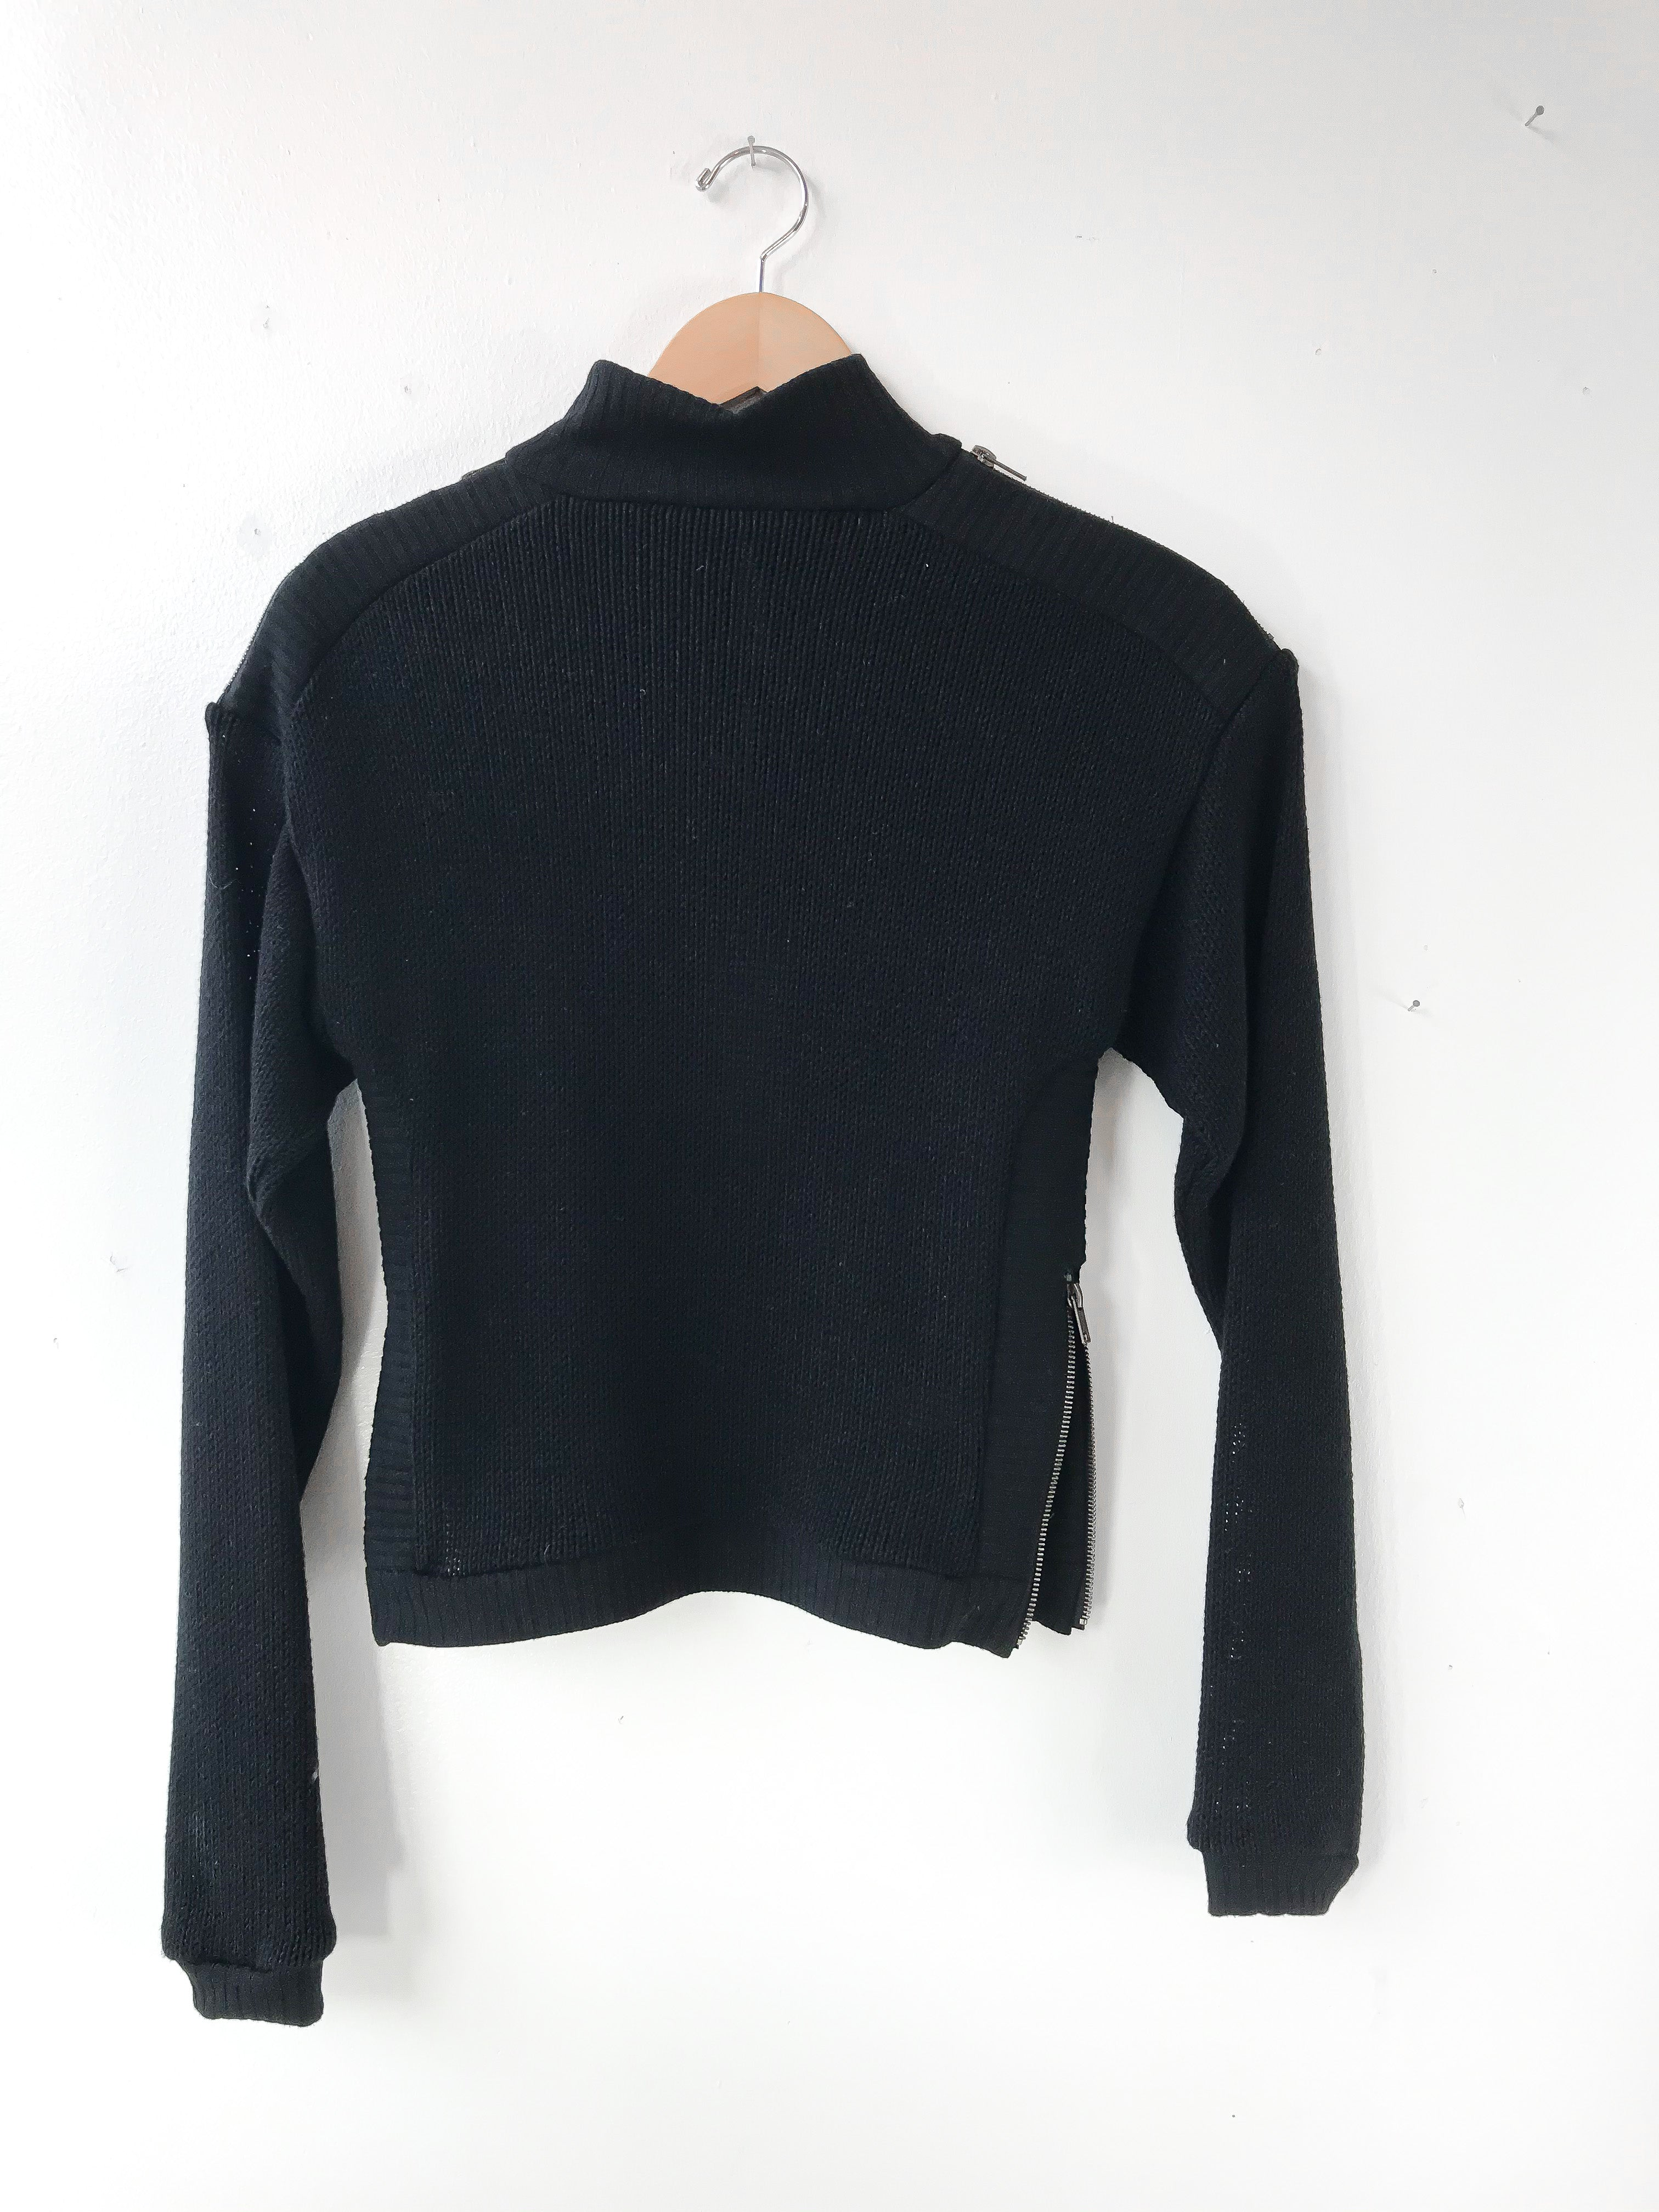 MELOW | ZOLA Turtle neck sweater - NOIR